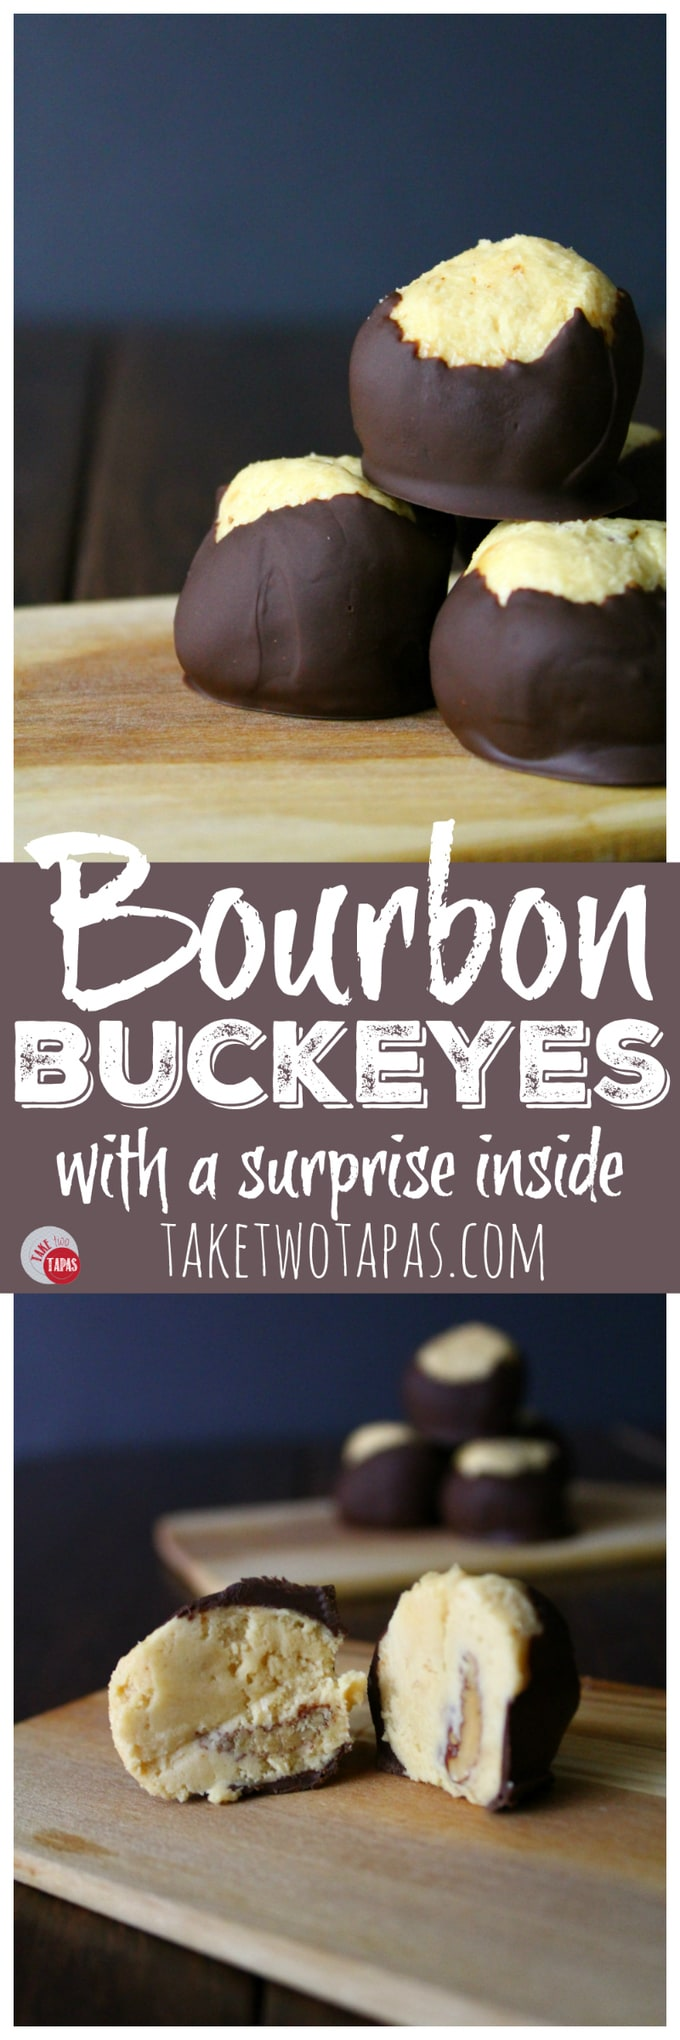 Bourbon Buckeyes with a surprise inside   Take Two Tapas   #Buckeyes #Bourbon #pecans #peanutbutter #chocolate